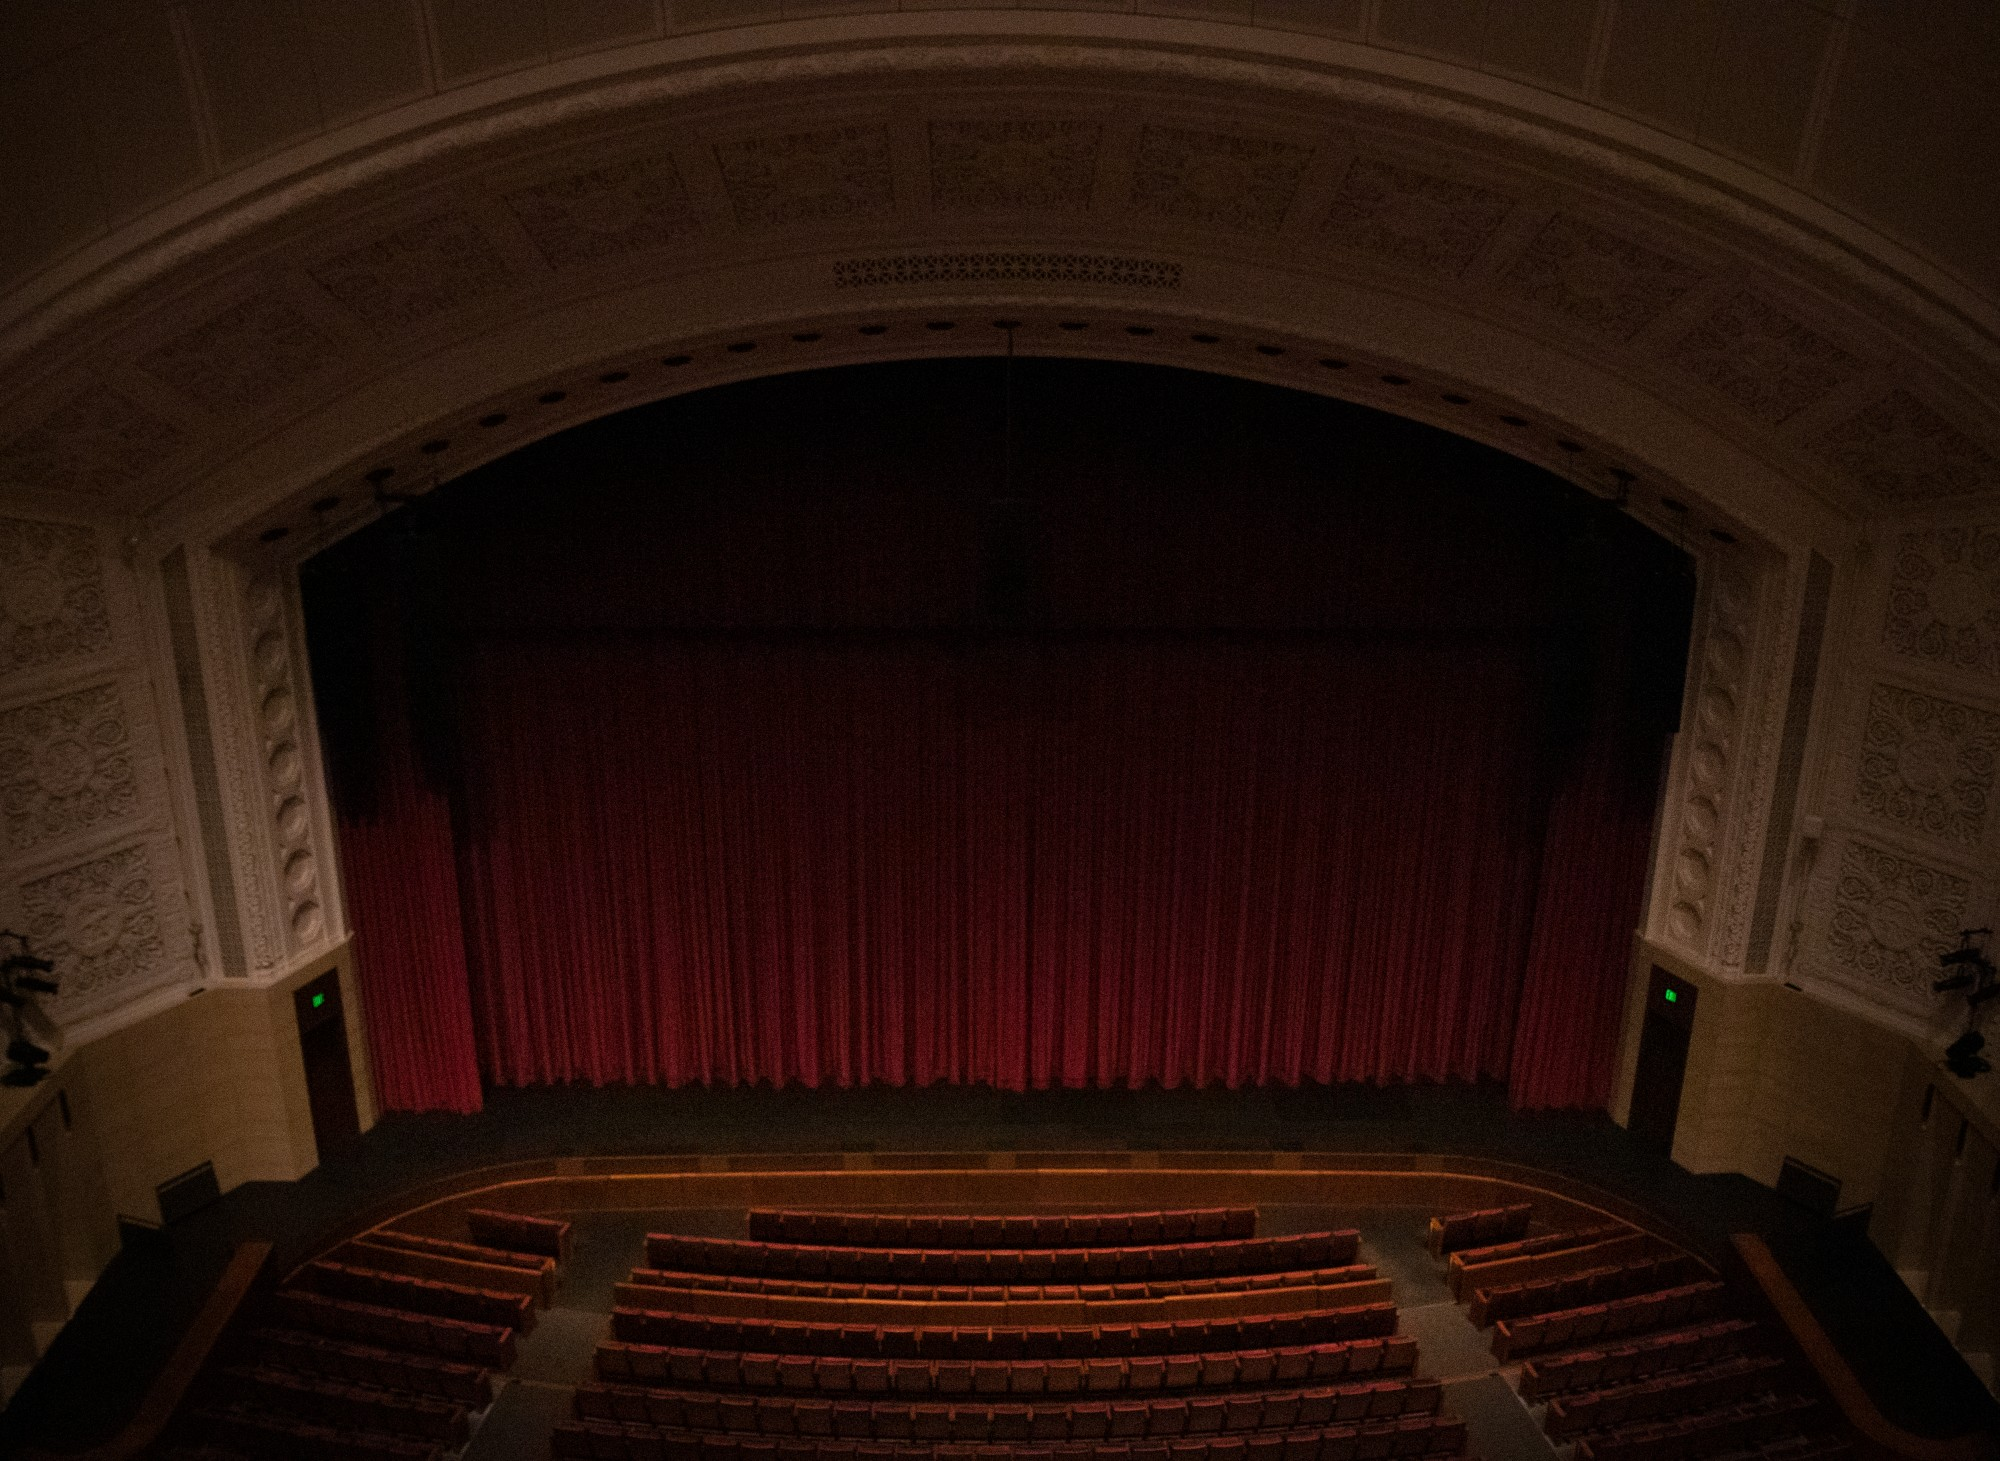 The empty theater of Northrop Auditorium on Tuesday, March 17.